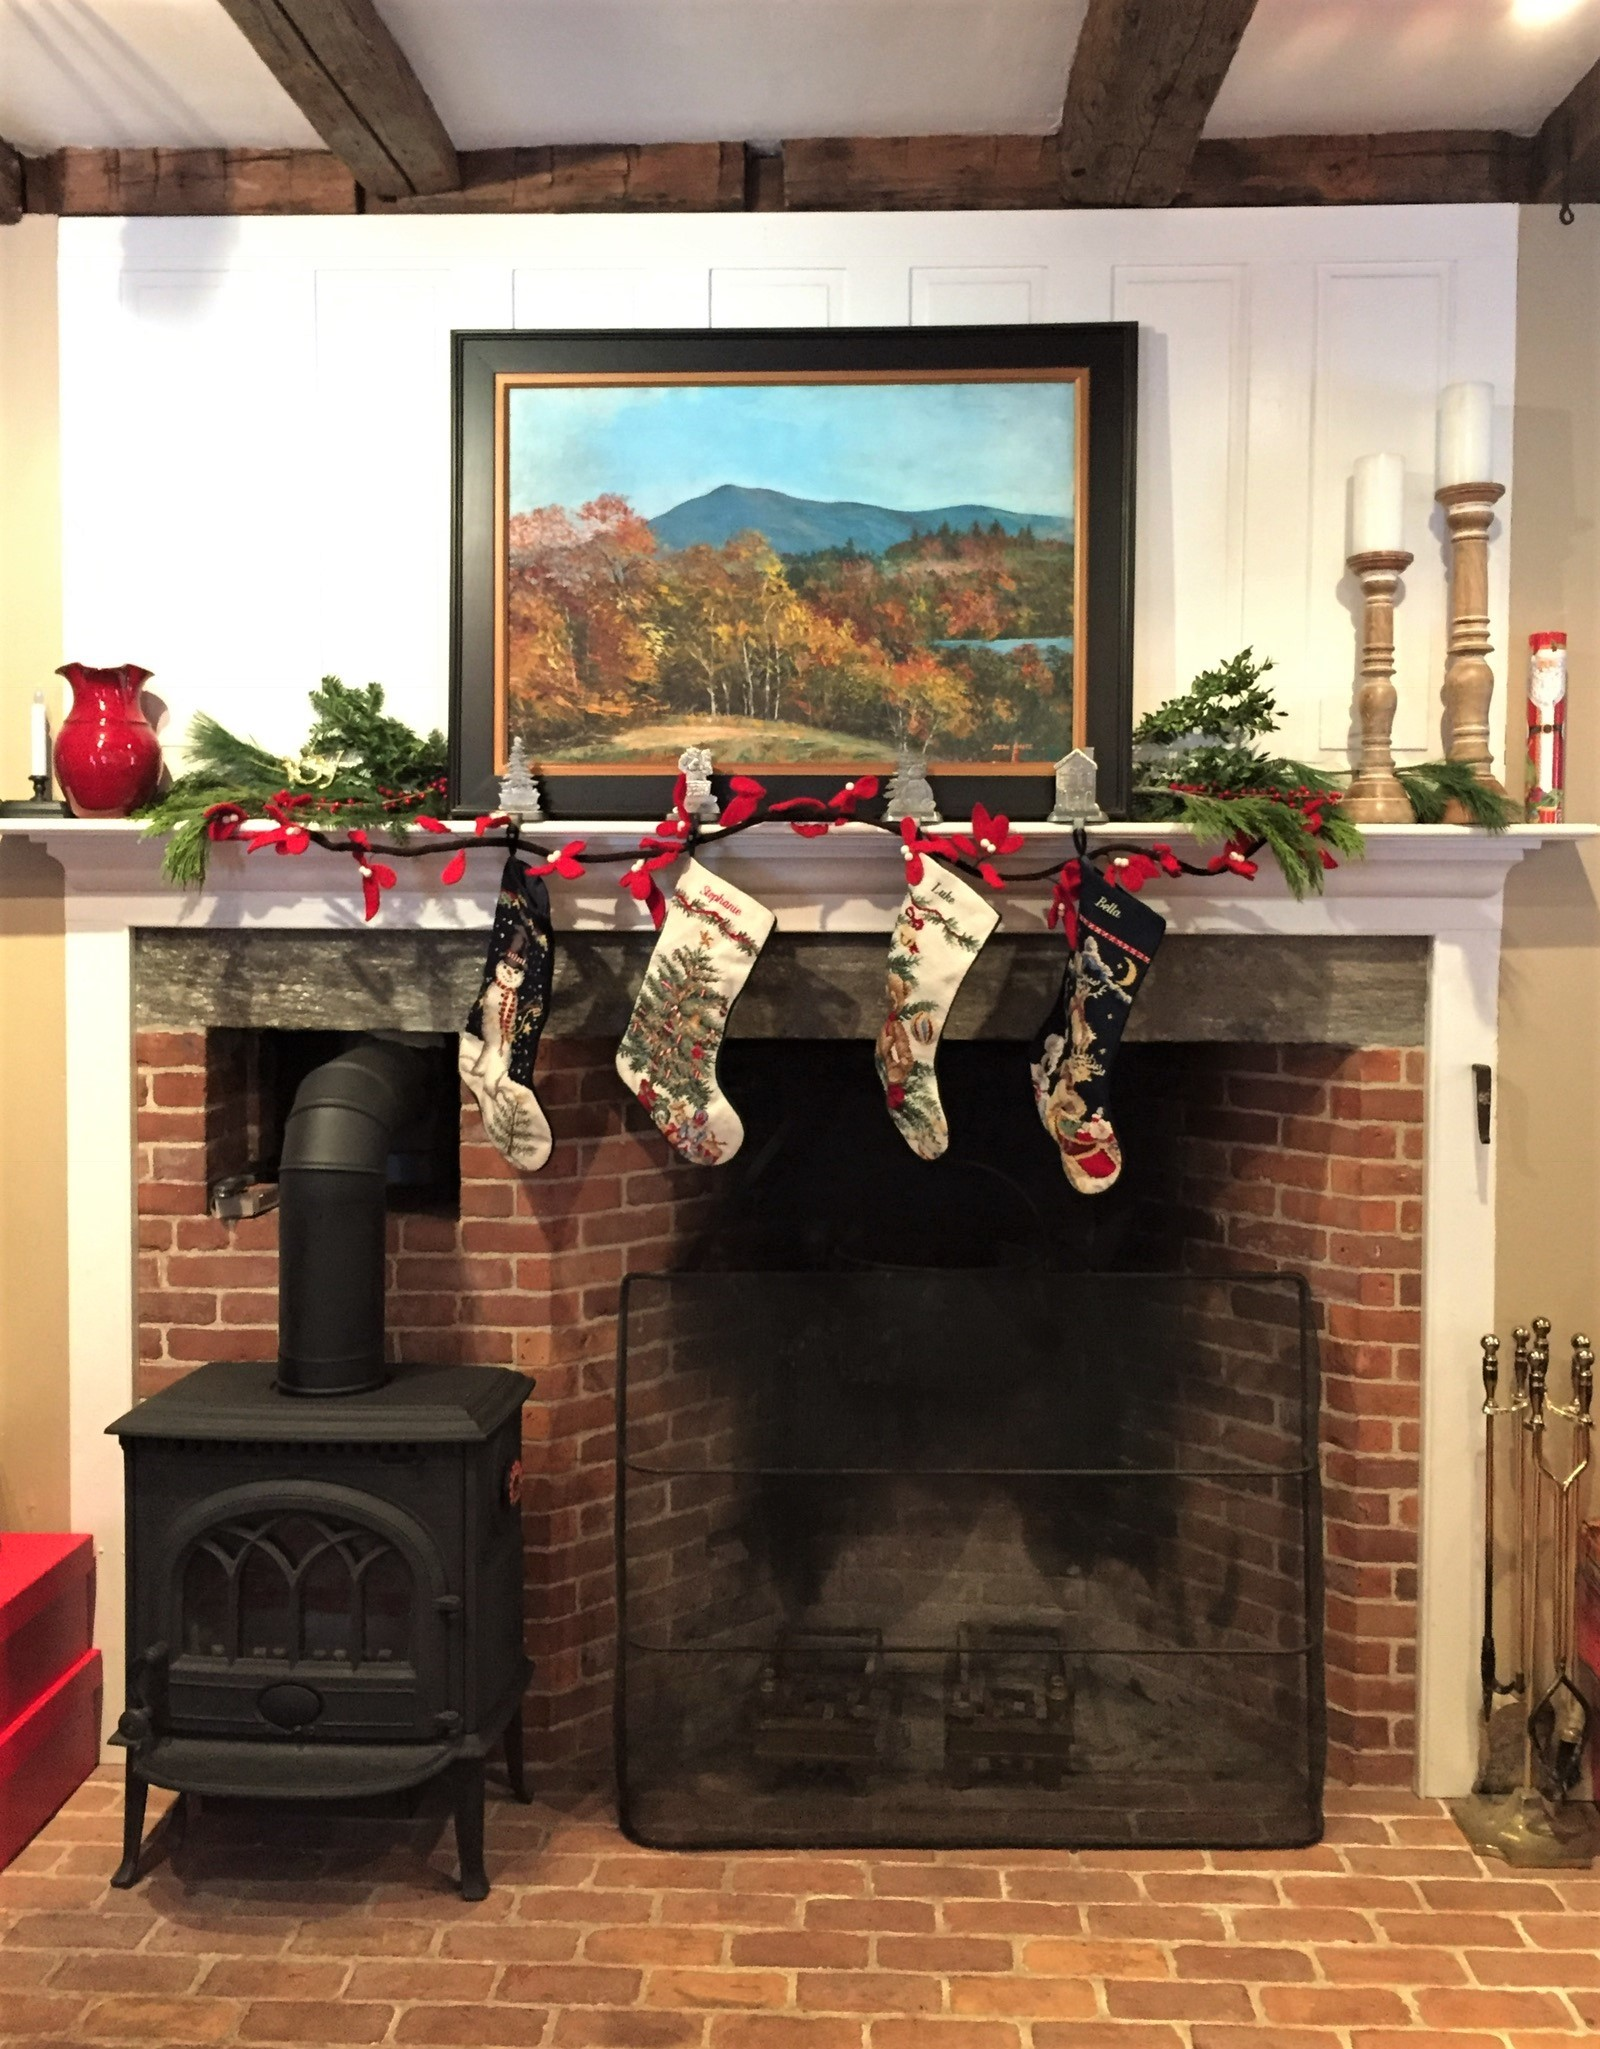 This was an interesting project. The original house was built in the 1820's with a center chimney with 3 fireplaces to heat the house. The house was dismantled in the 1980's and moved to its current location. The chimney could not be moved, but was recreated in the same manner. This is the main fireplace where cooking would have happened. There is an iron bracket that holds a large iron kettle for cooking food. There was a bread oven on the left side that the owners added a small wood stove to. The brick hearth and surround work nicely with the original beams and painted wood paneling.